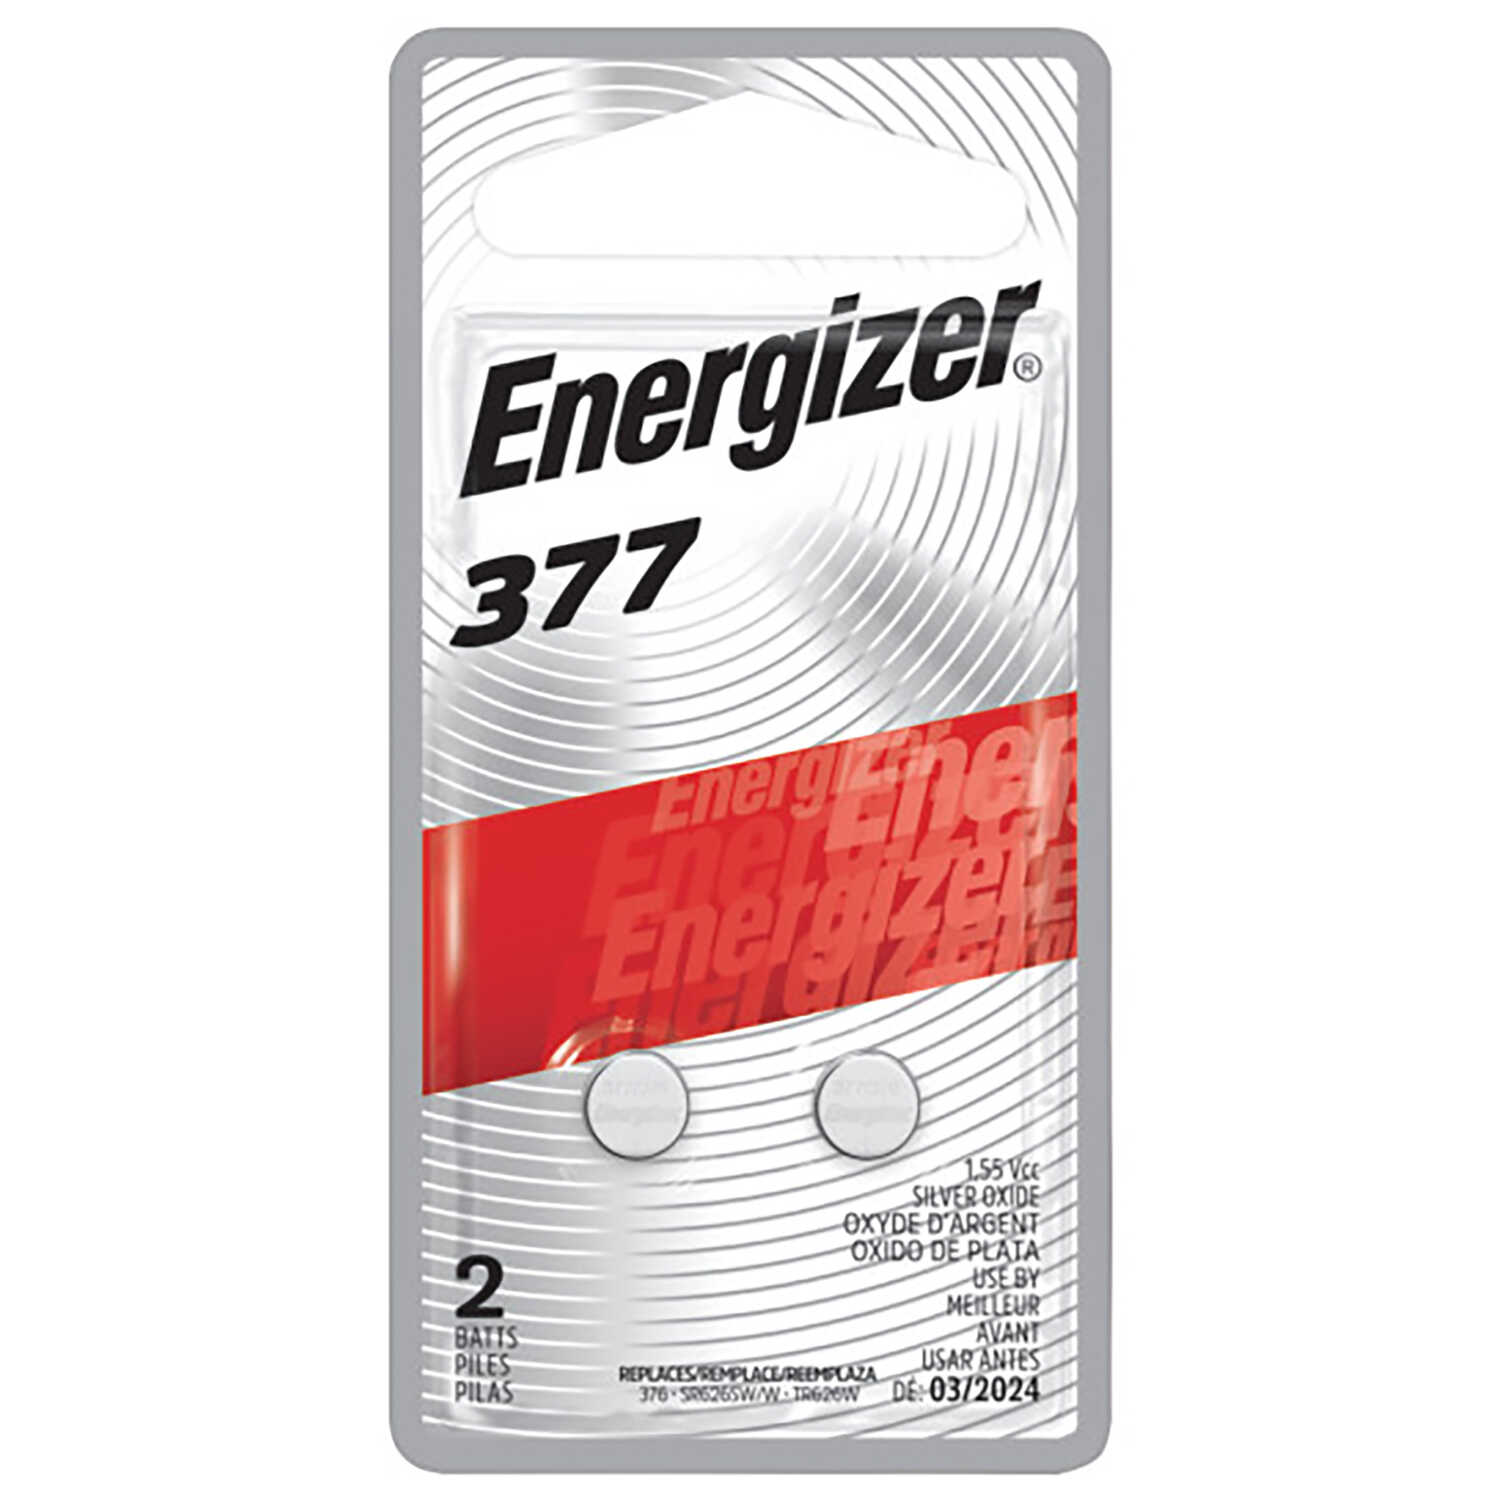 Energizer  Silver Oxide  377  1.5 volt Electronic/Watch Battery  2 pk